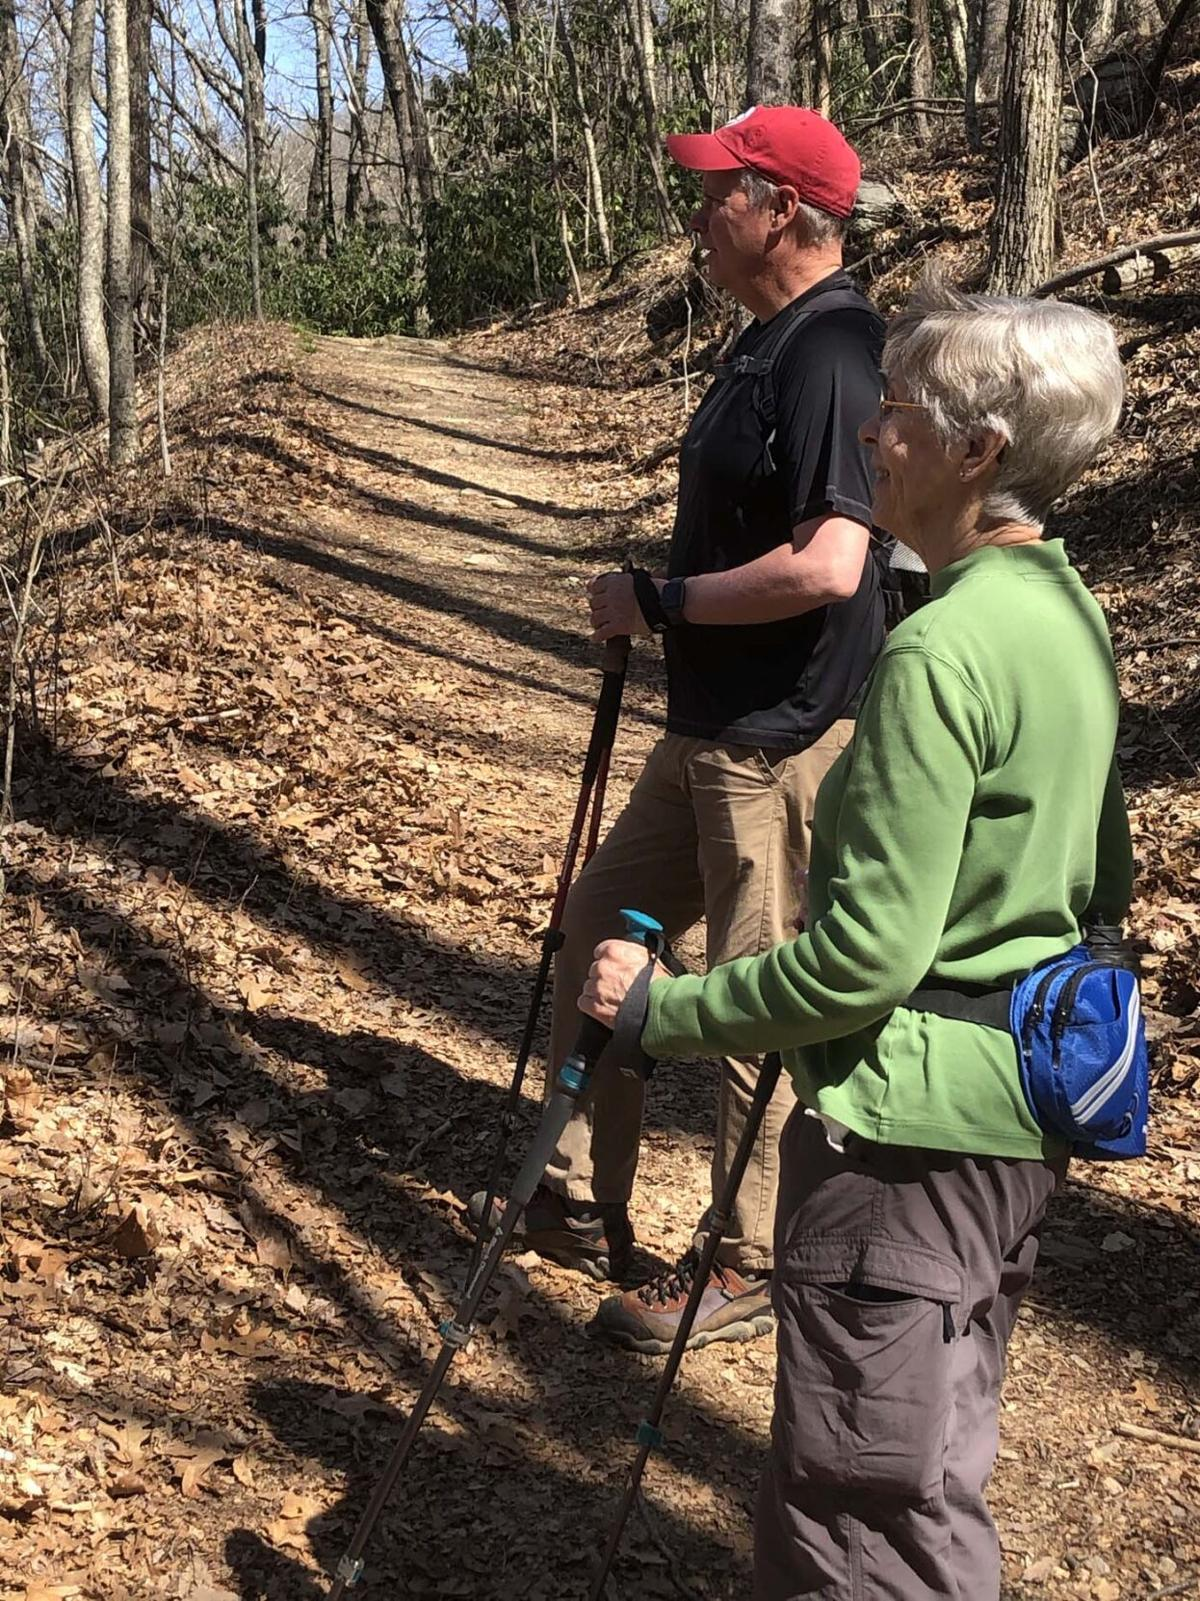 WNC Afield: Beware the Venus flytrap that is the Trombatore Trail